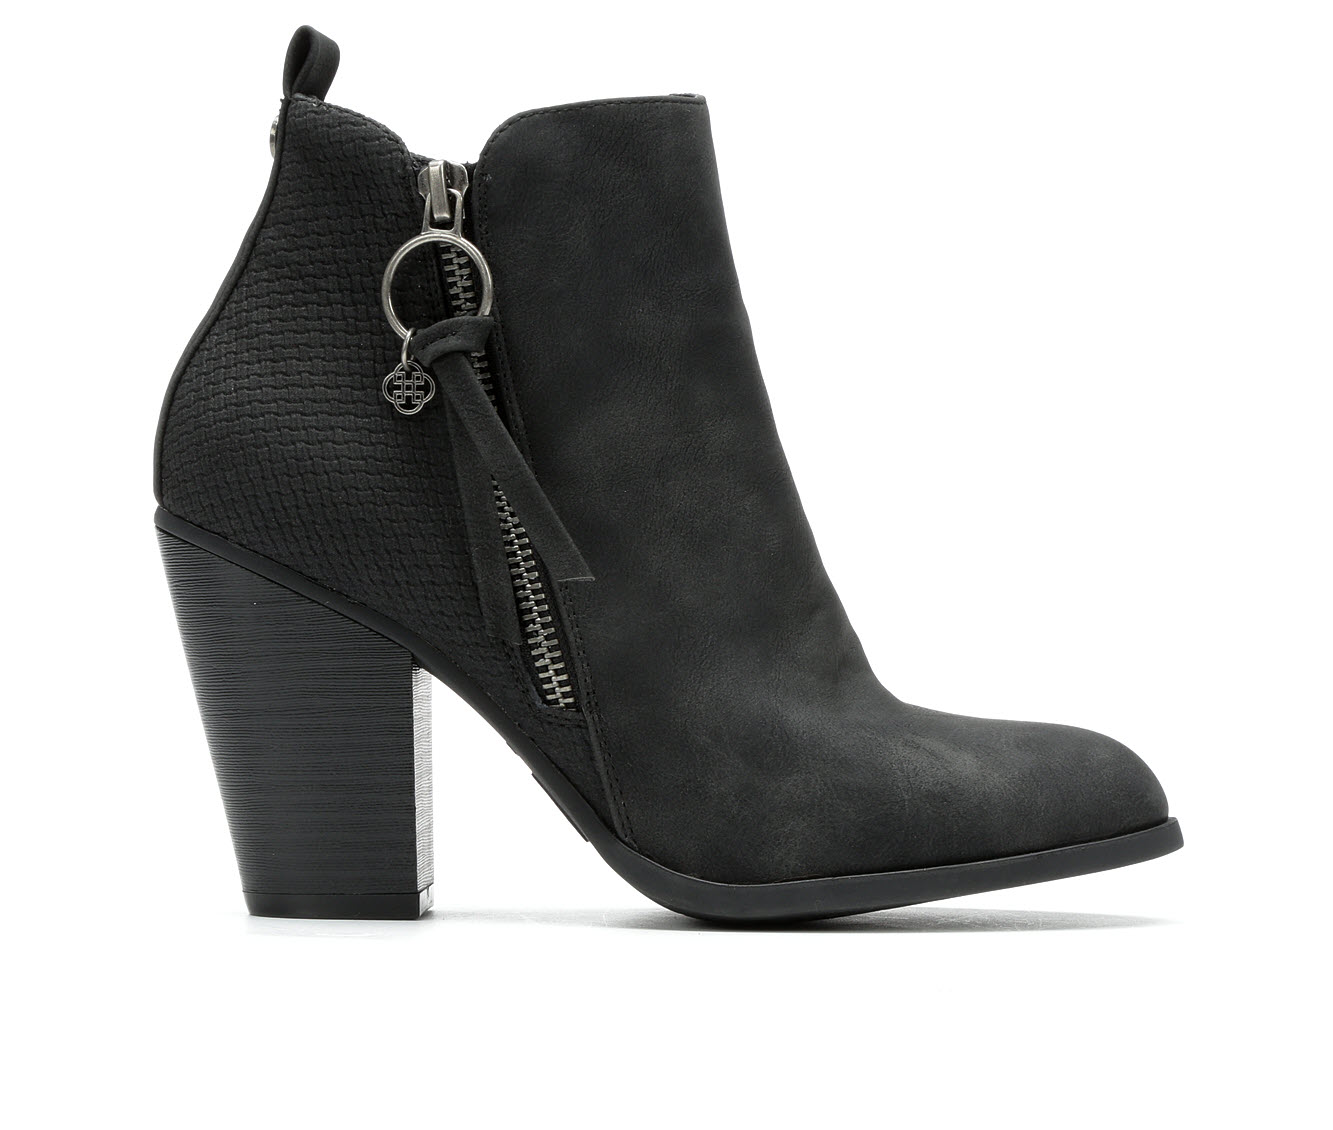 Daisy Fuentes Clay Women's Boot (Black Faux Leather)